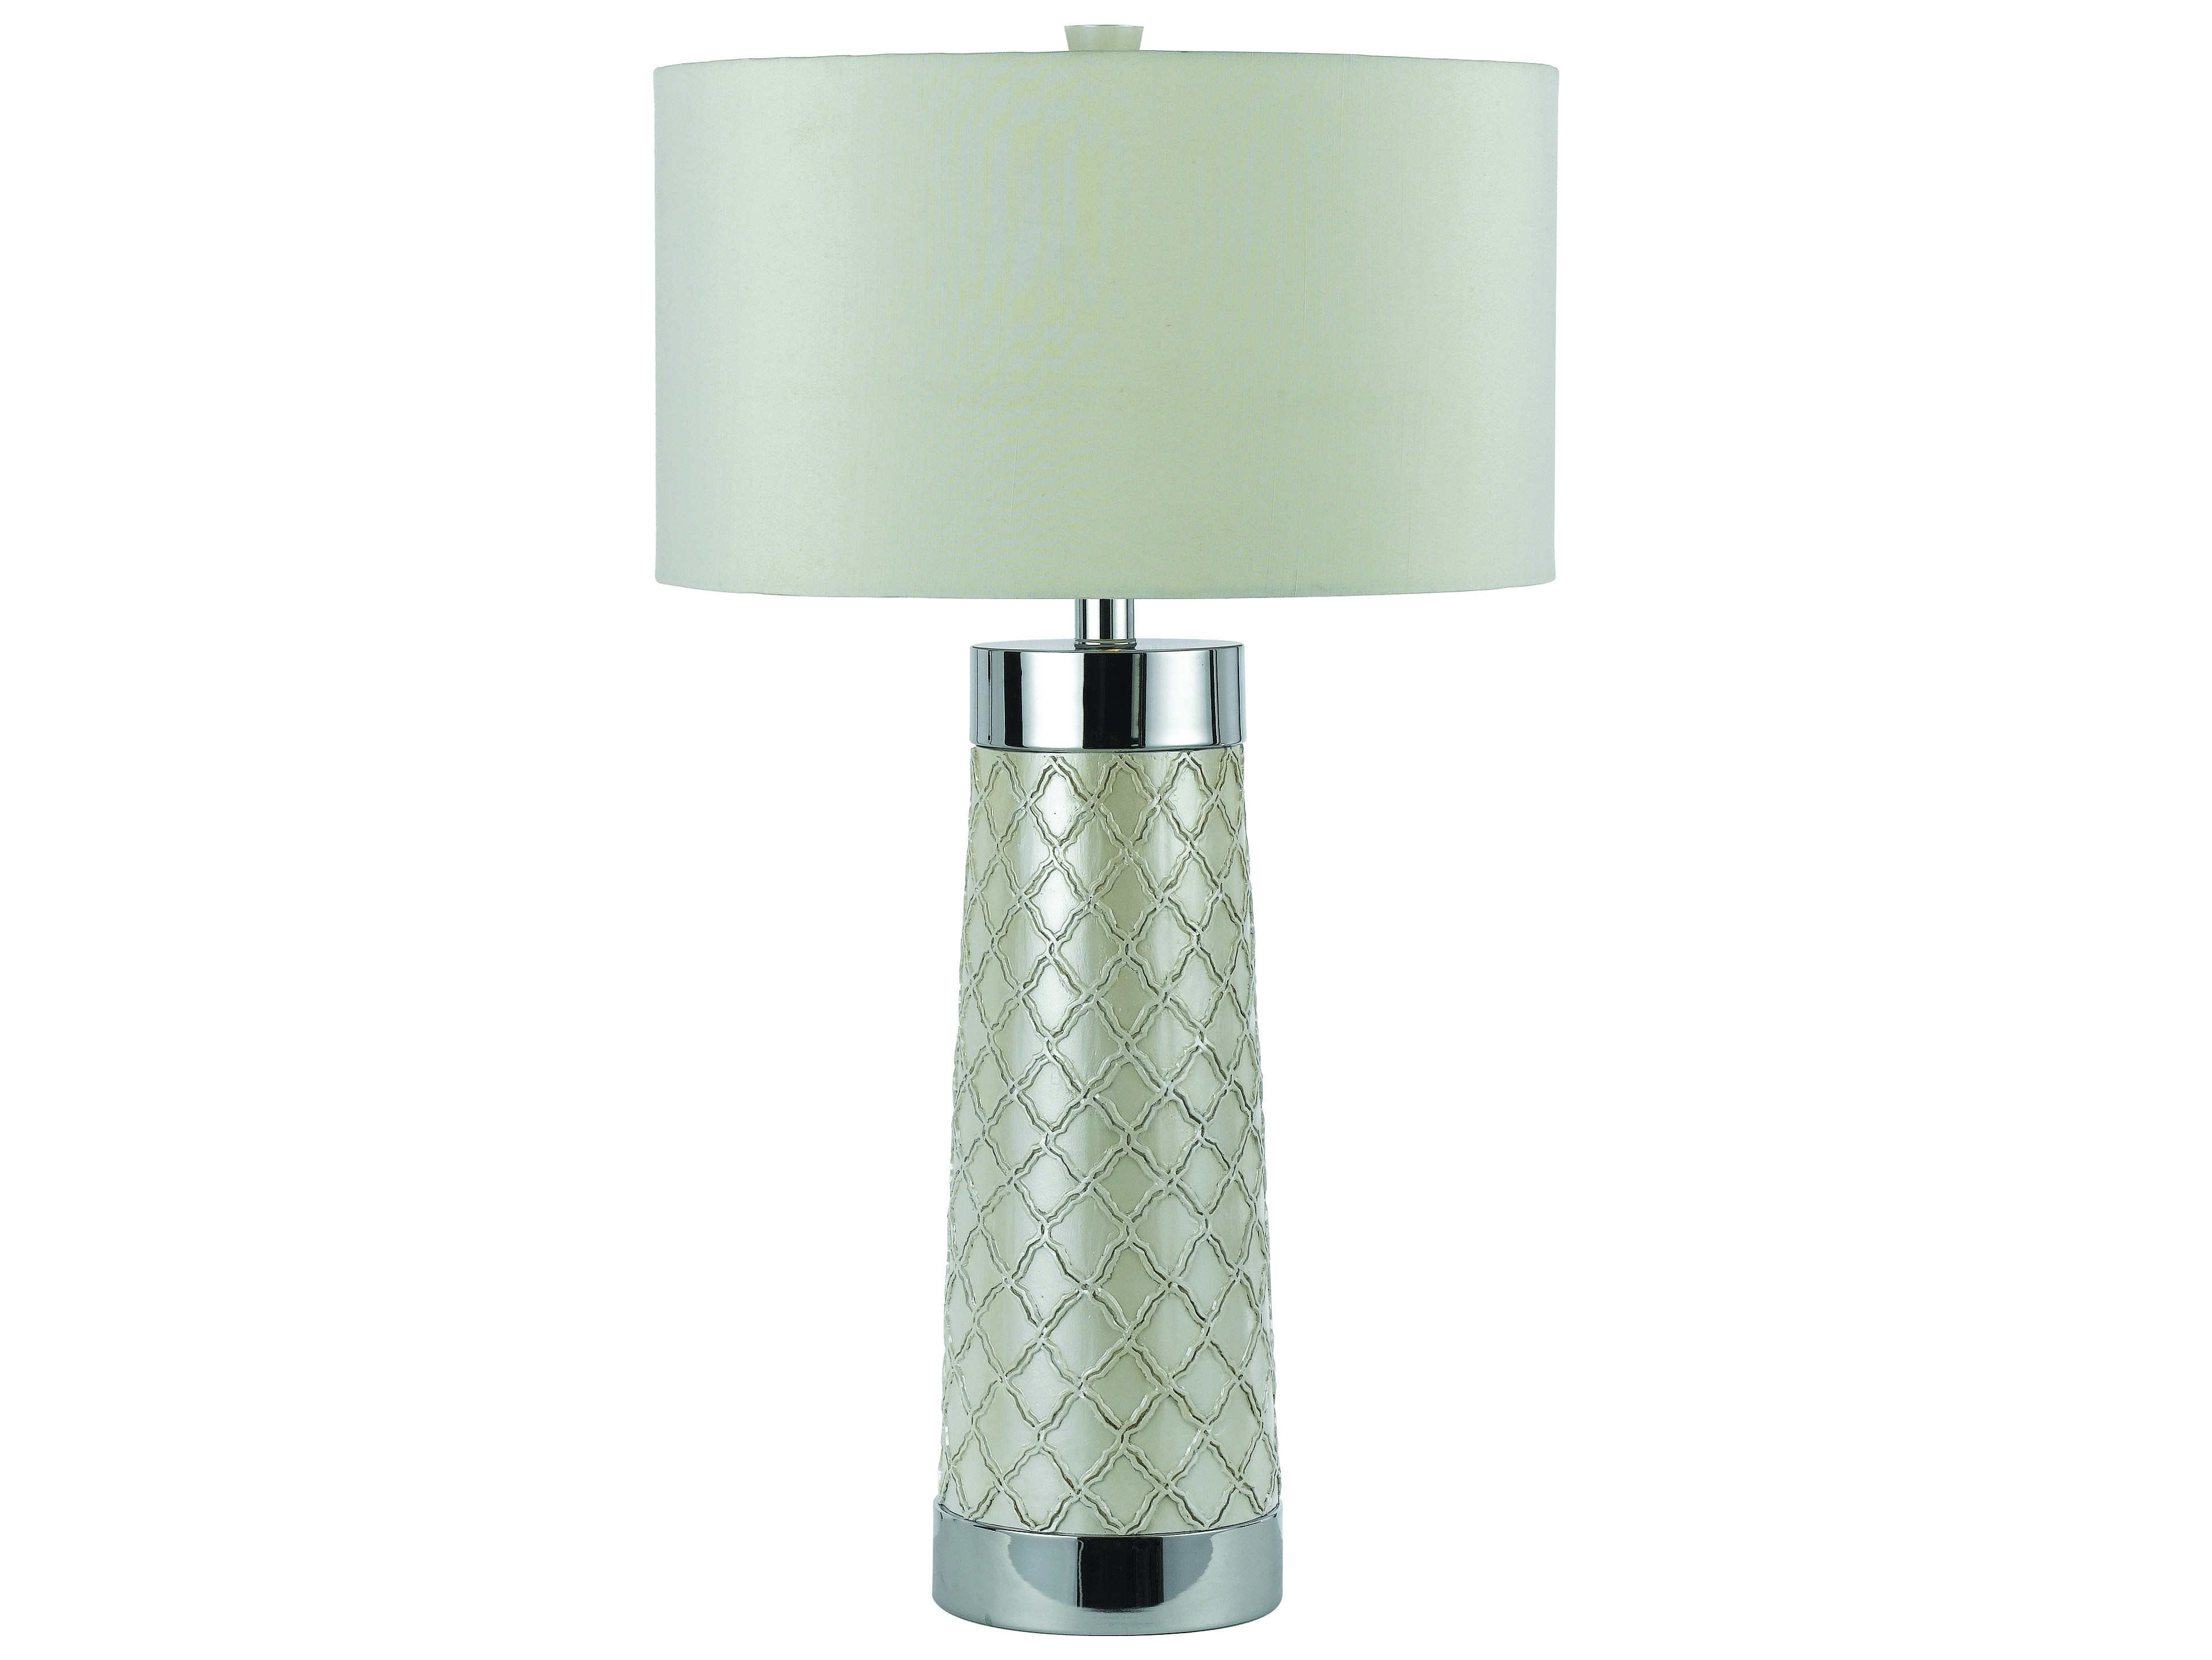 Af lighting candice olson chrome table lamp color crush white af lighting candice olson chrome table lamp geotapseo Image collections